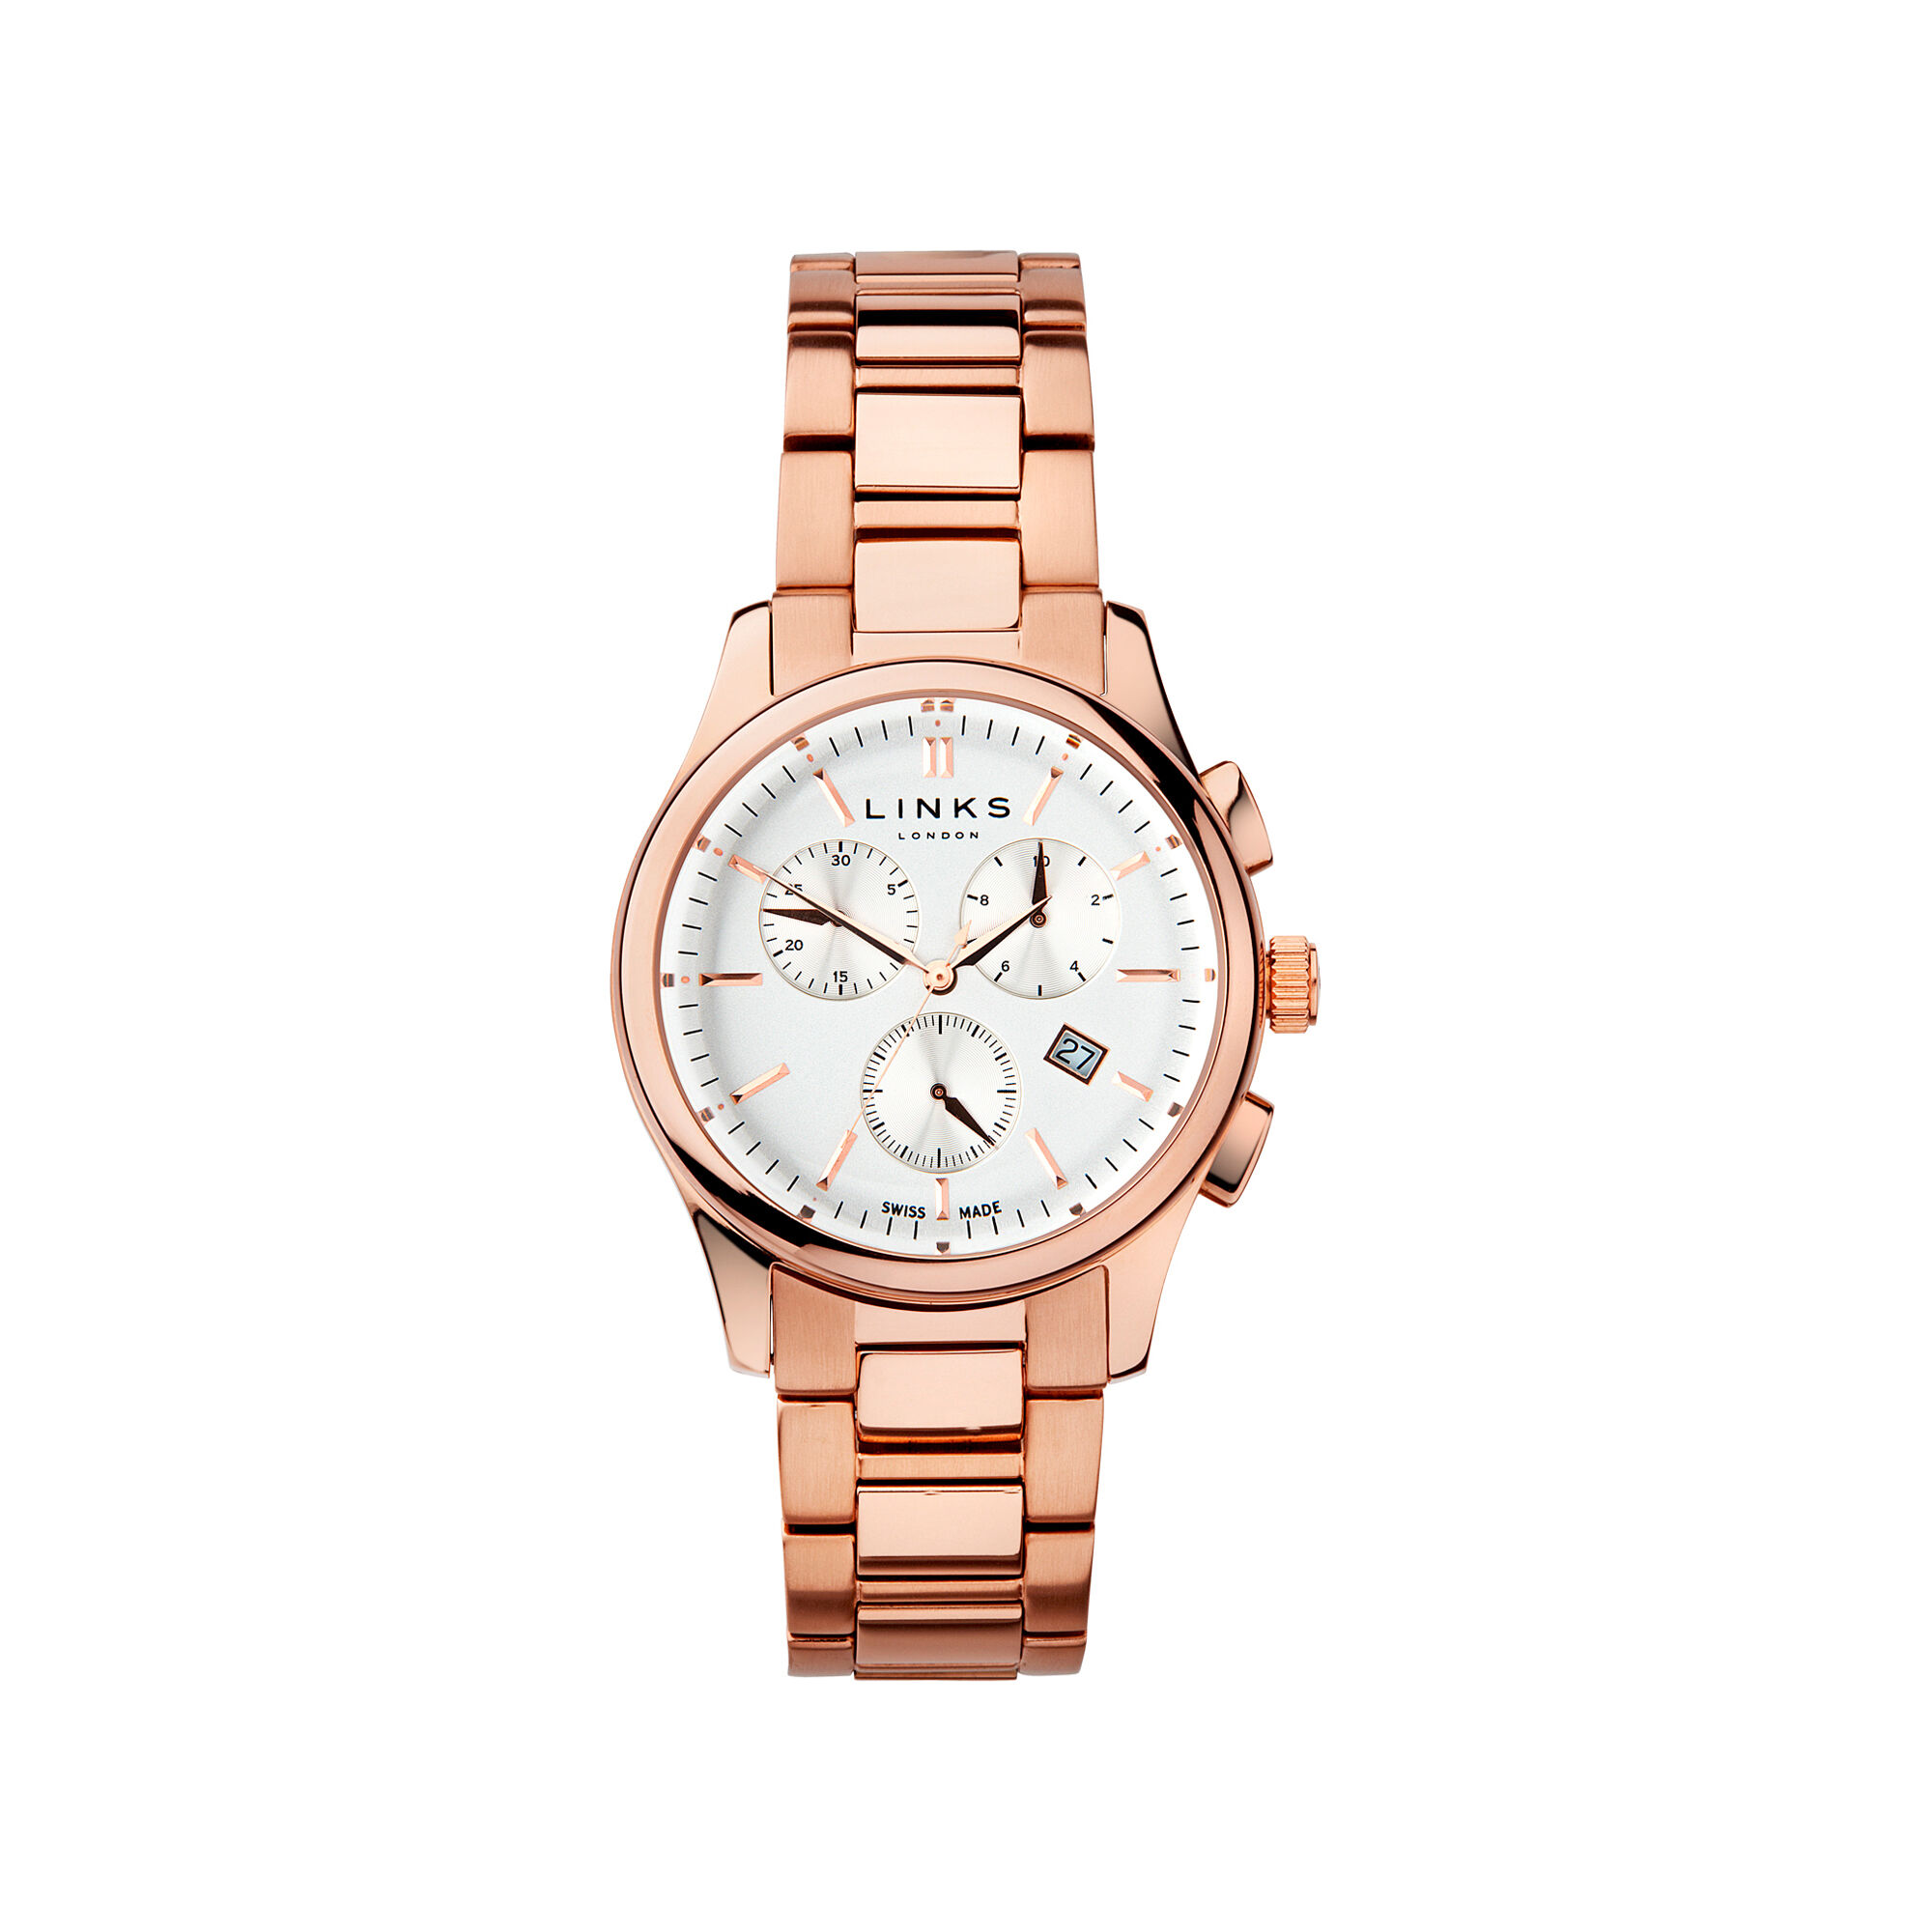 prod hei ladies attention p wid watch gold qlt rose watches